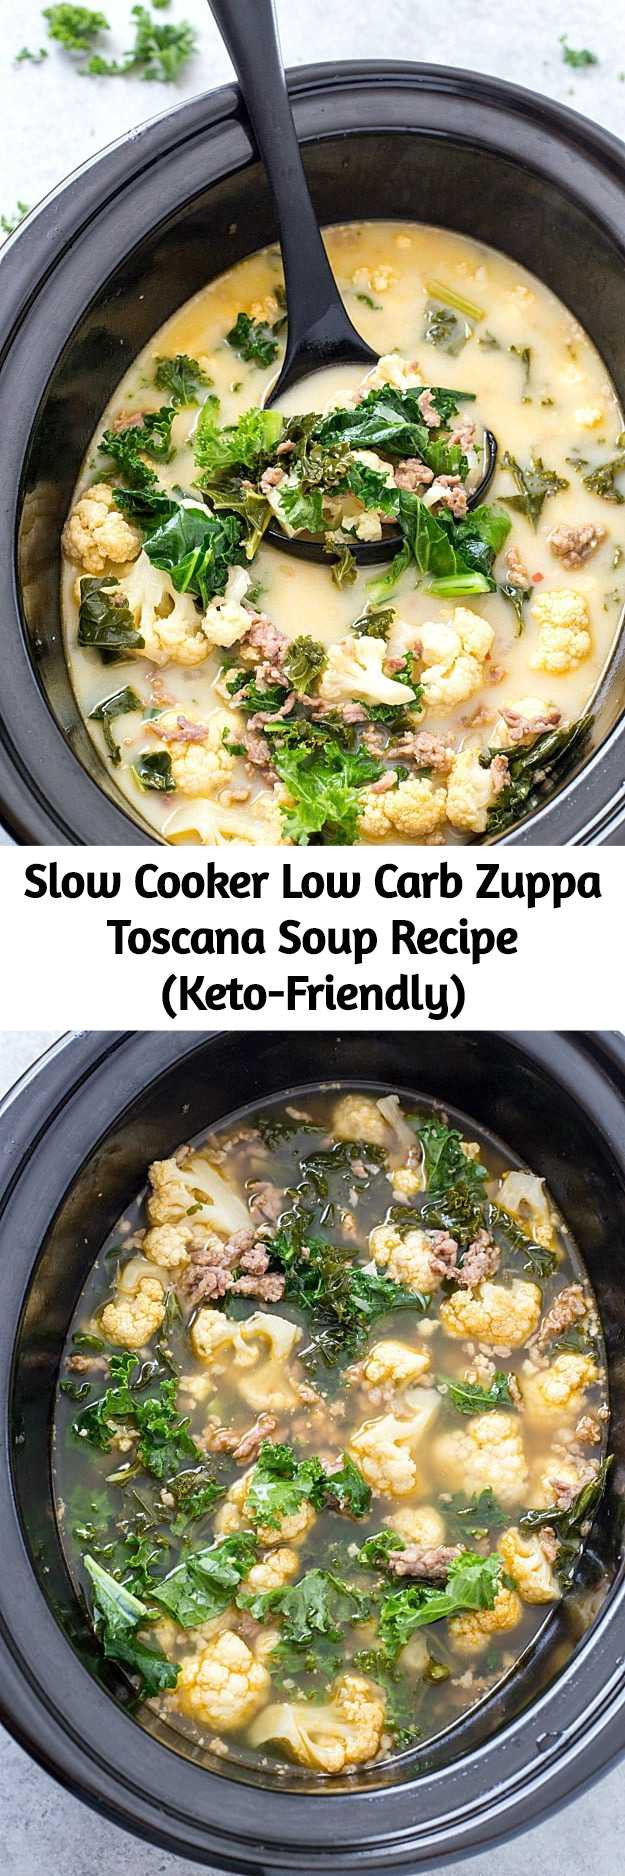 Slow Cooker Keto Zuppa Toscana  Slow Cooker Low Carb Zuppa Toscana Soup Recipe Keto